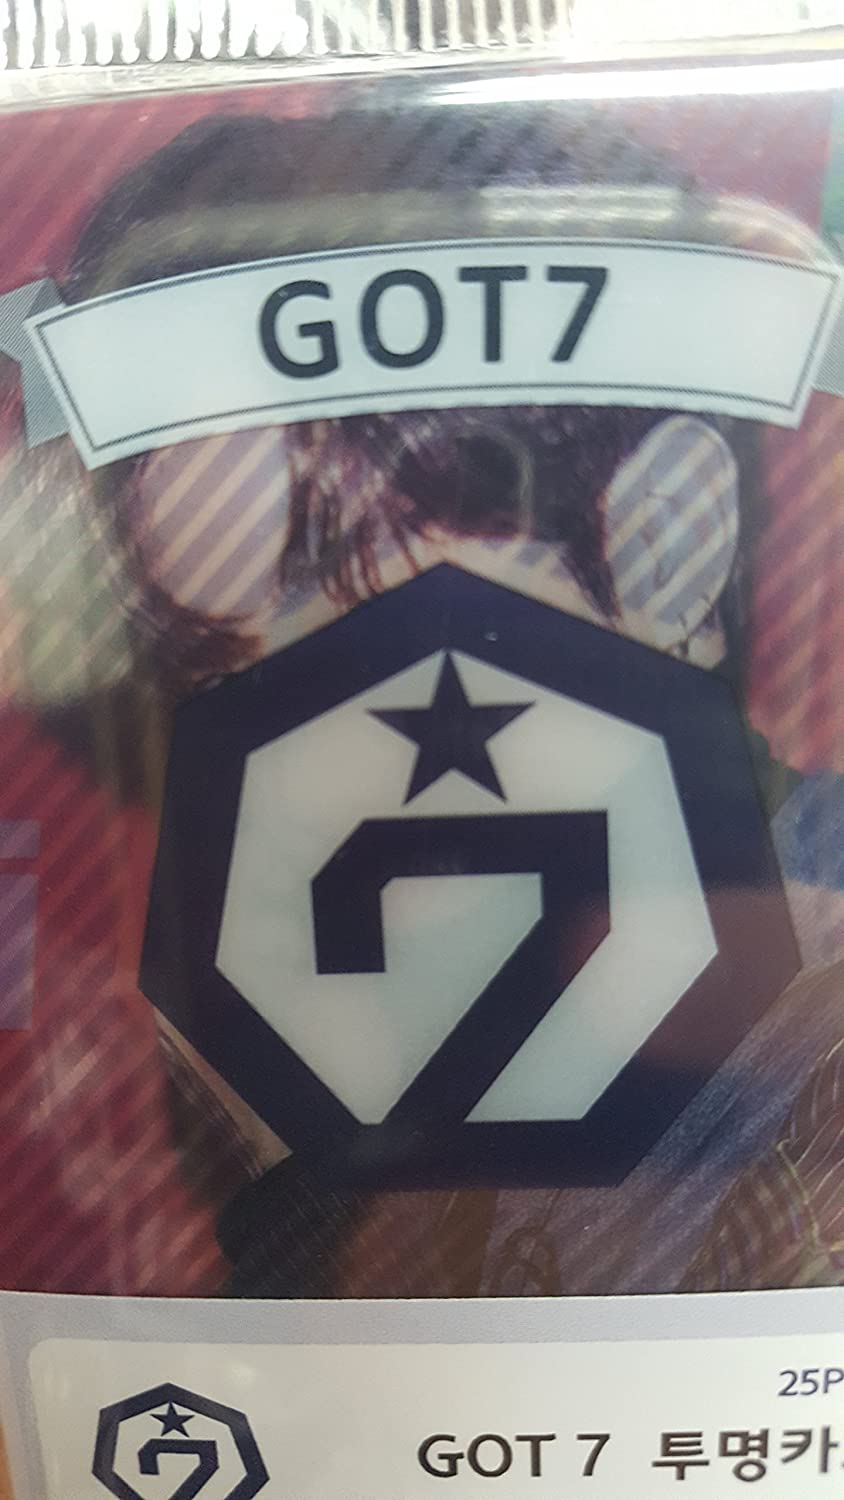 Kpop Got 7 Transparents 2 x 3 inches 20 pcs Got7 - 2 counts